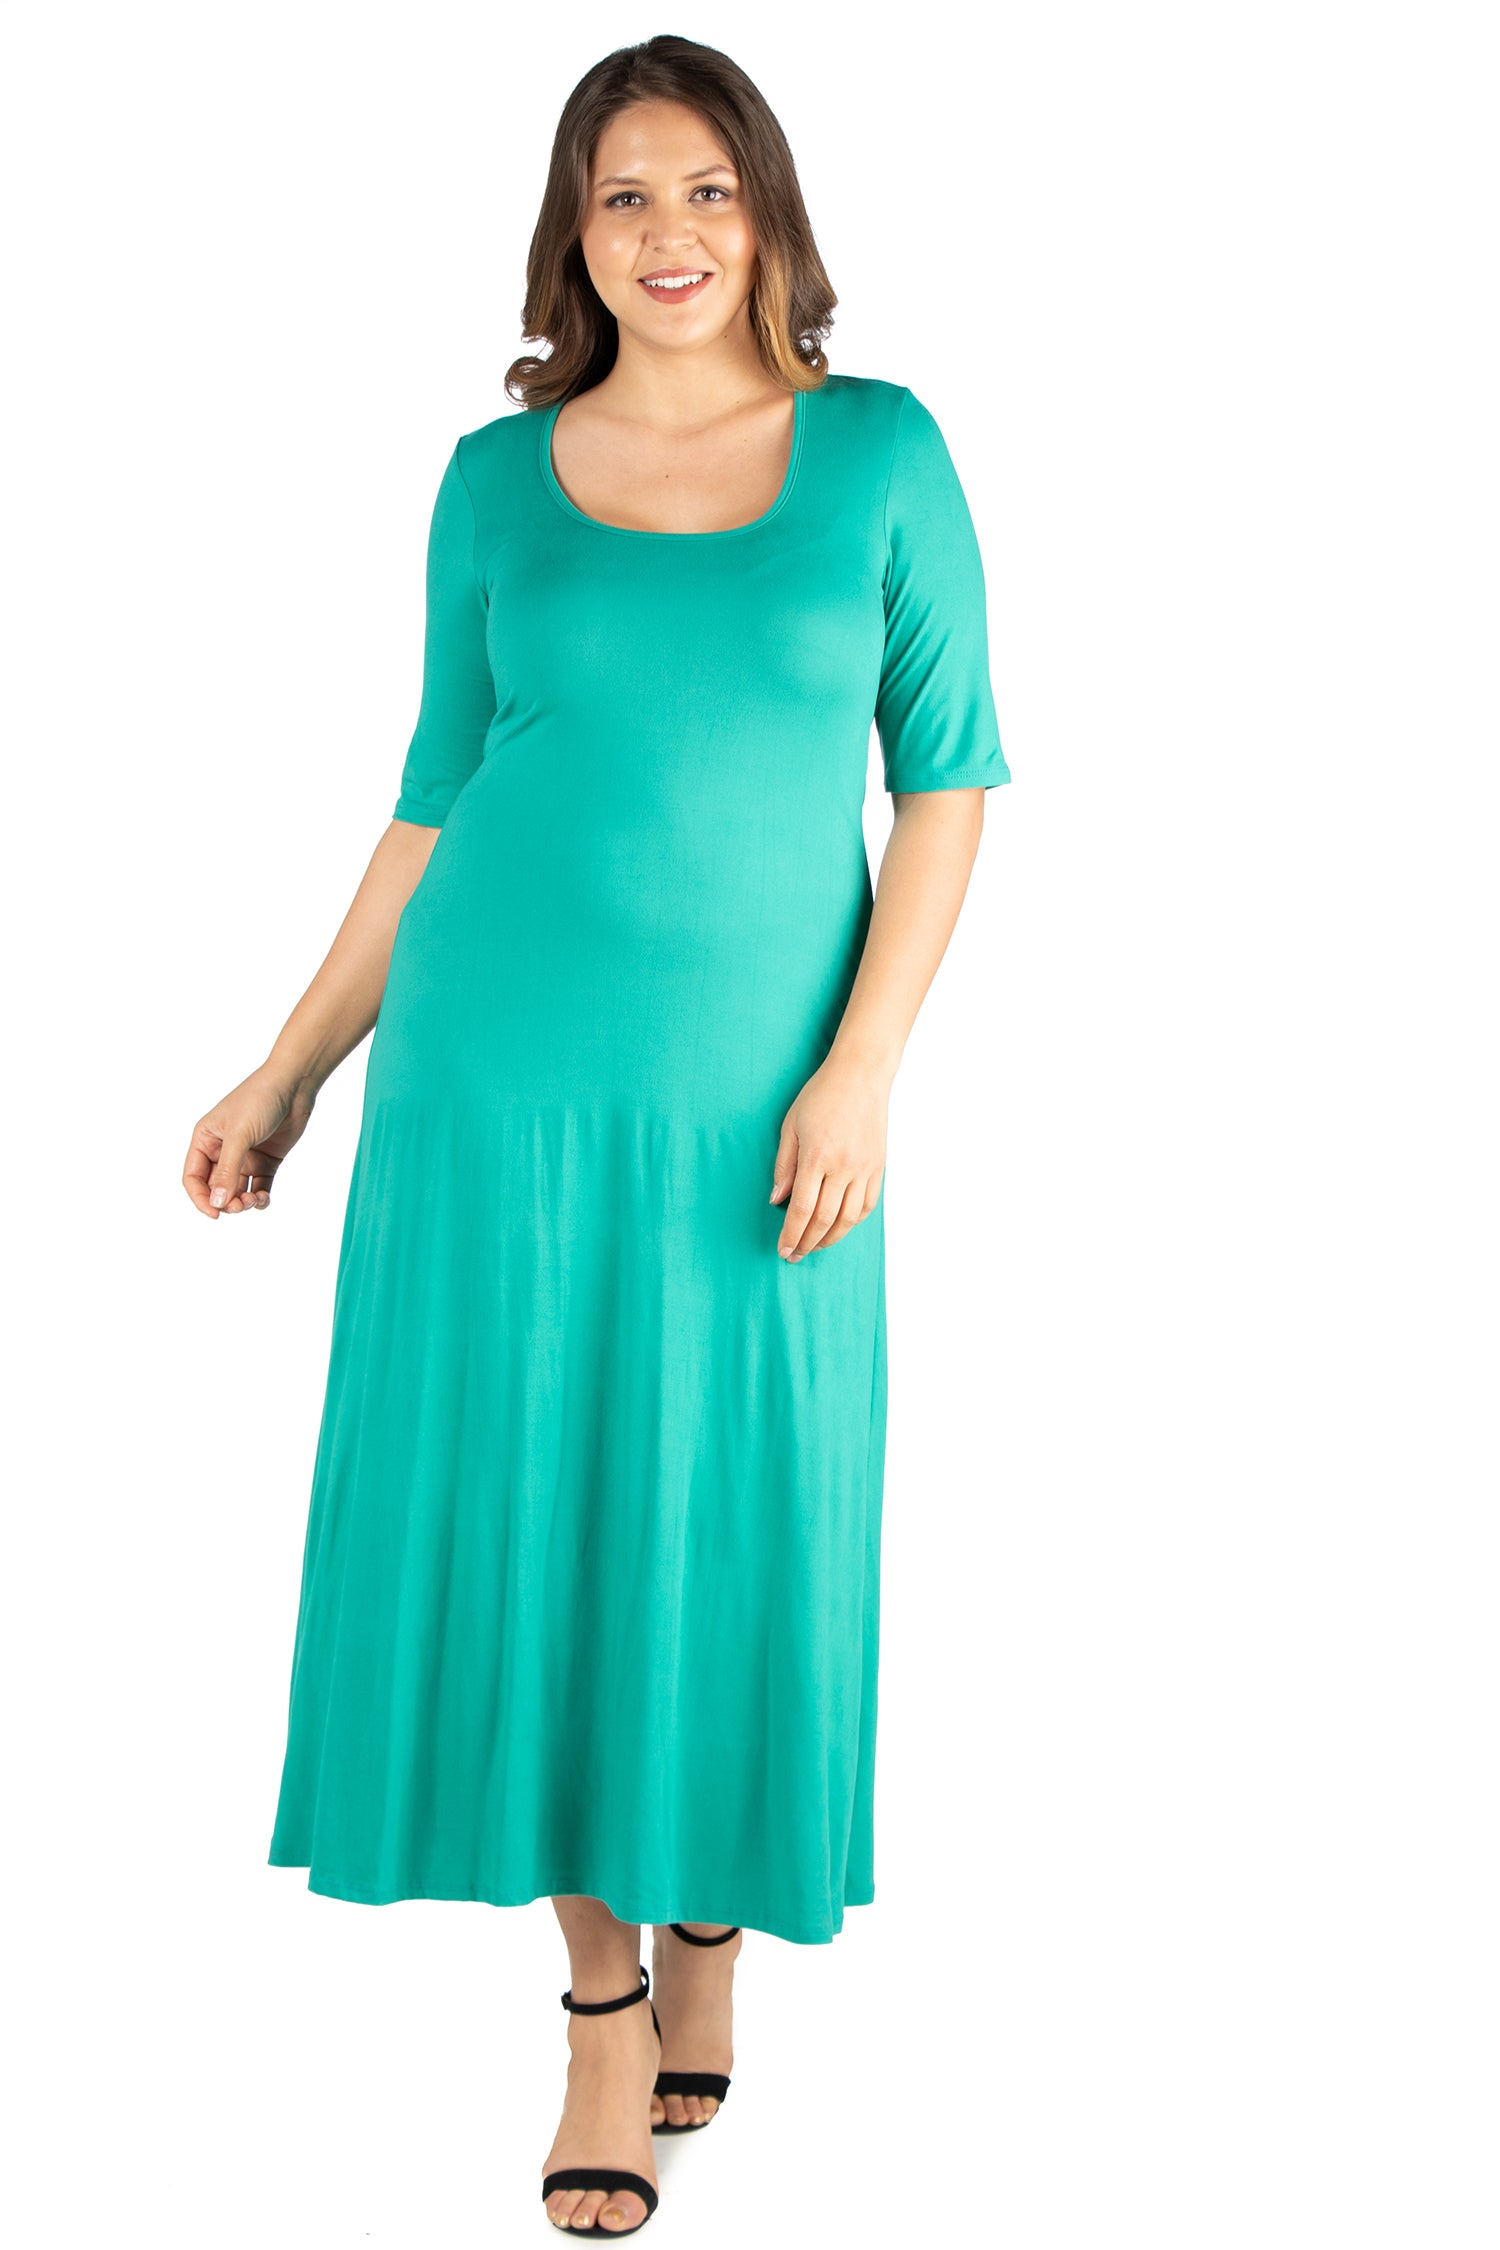 24seven Comfort Apparel Elbow Length Sleeve Plus Size Maxi Dress-DRESSES-24Seven Comfort Apparel-JADE-1X-24/7 Comfort Apparel